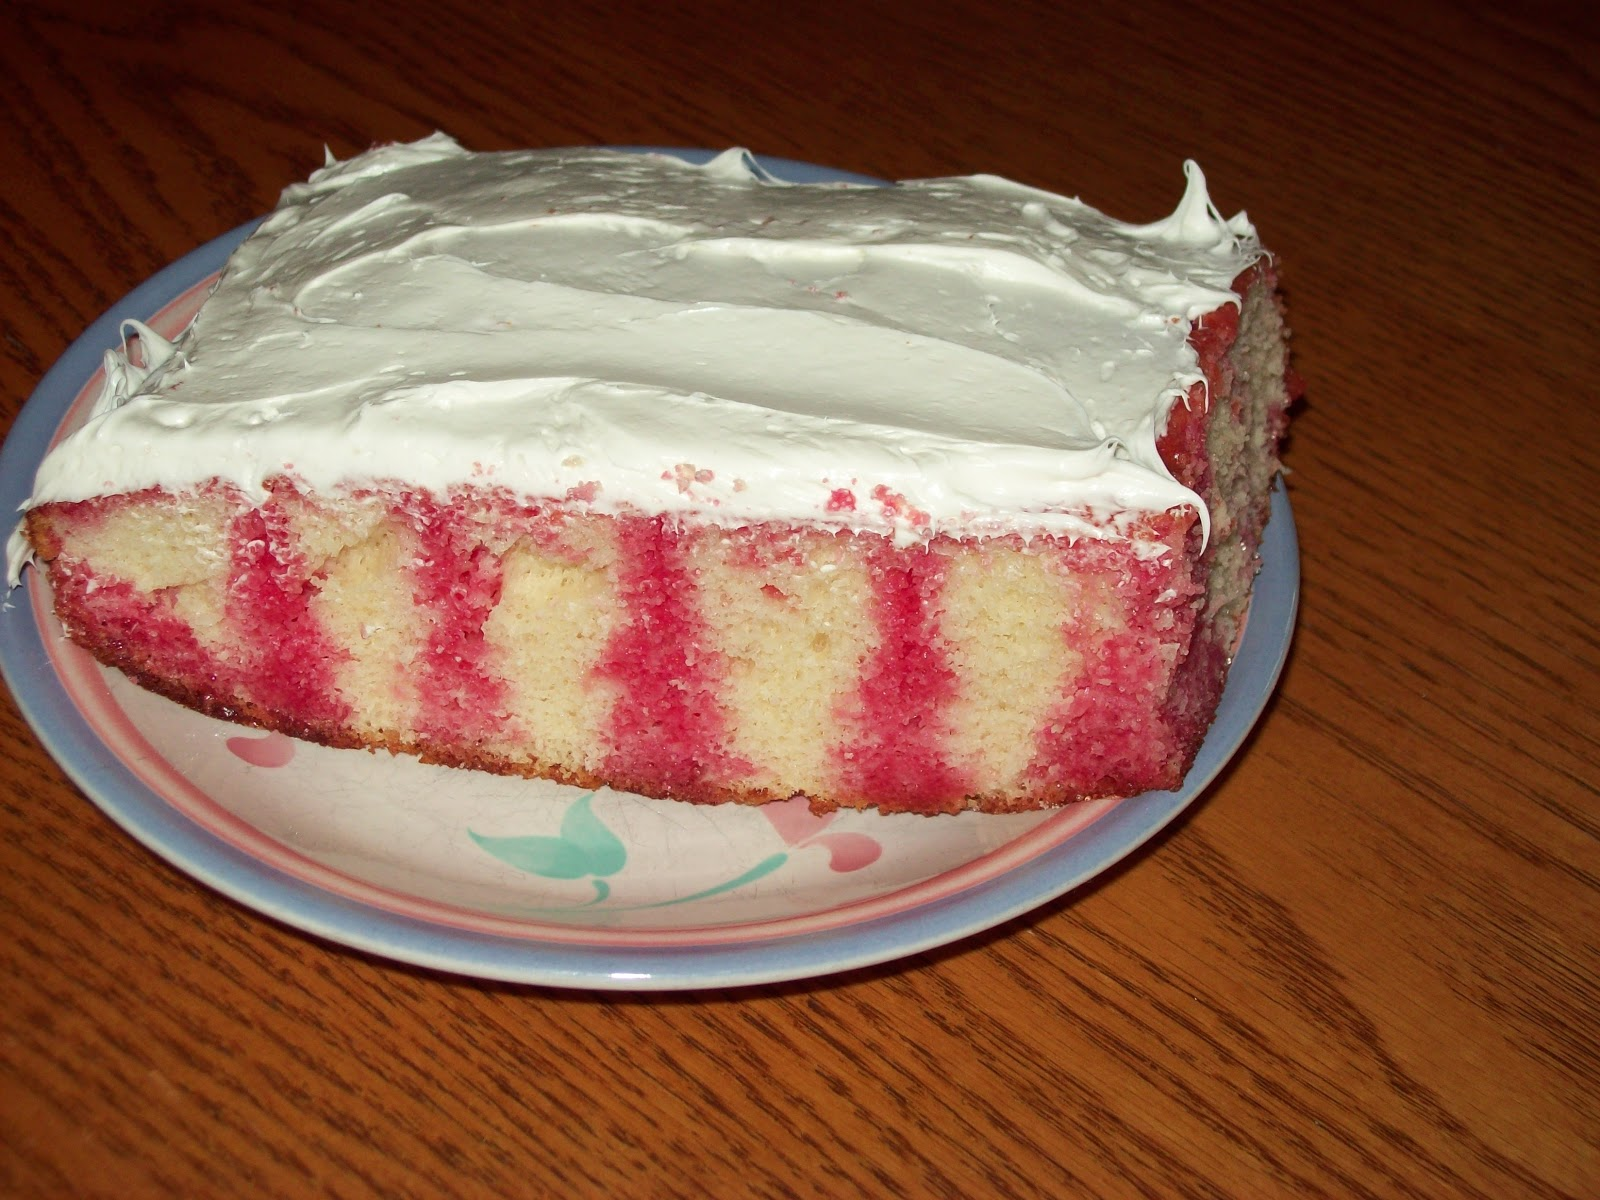 Gateau au jello